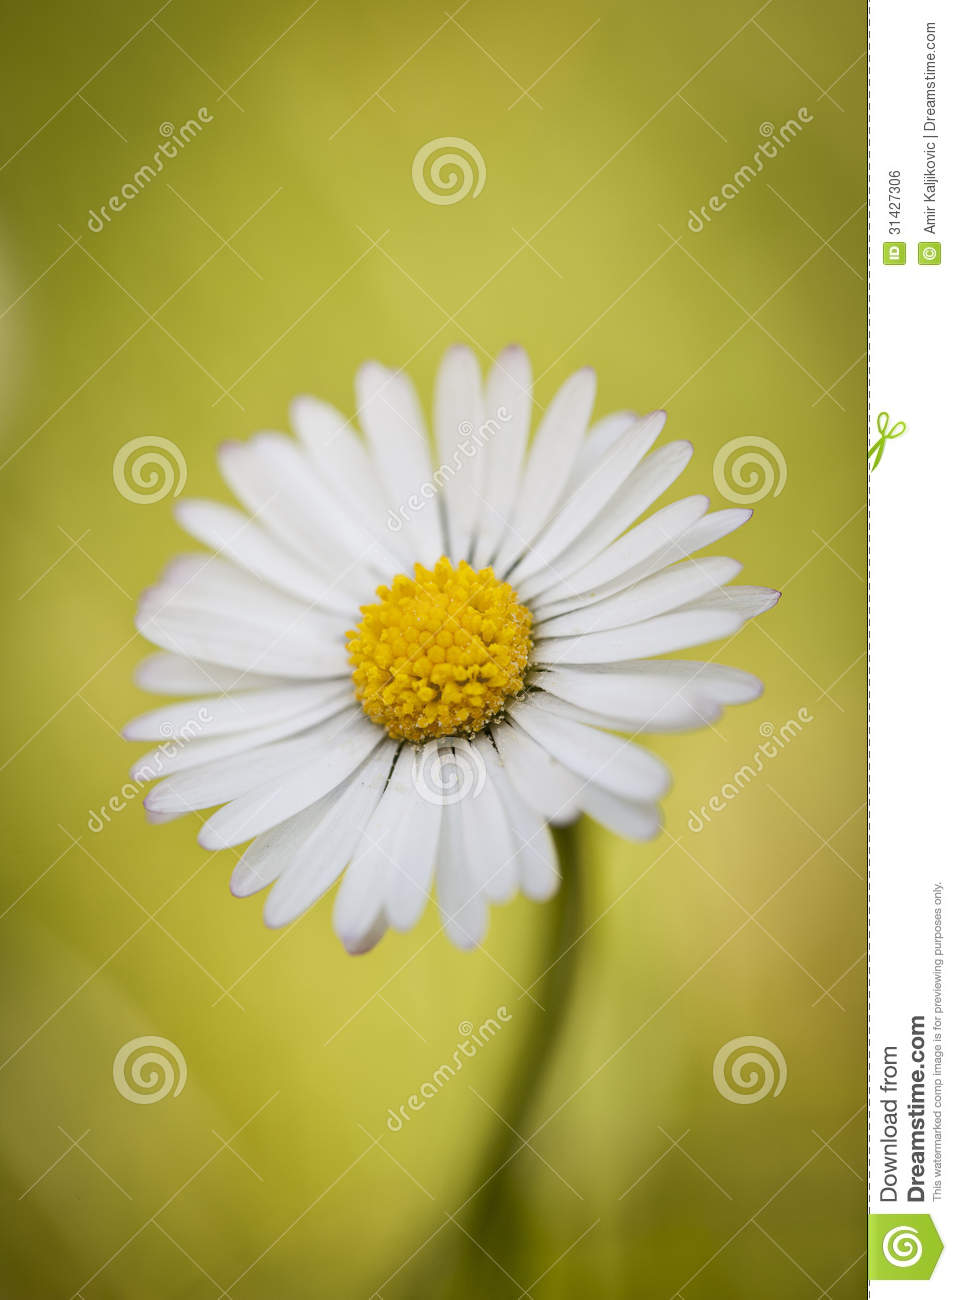 Close Up Of A Single Daisy Flower Stock Photo Image Of Single Up